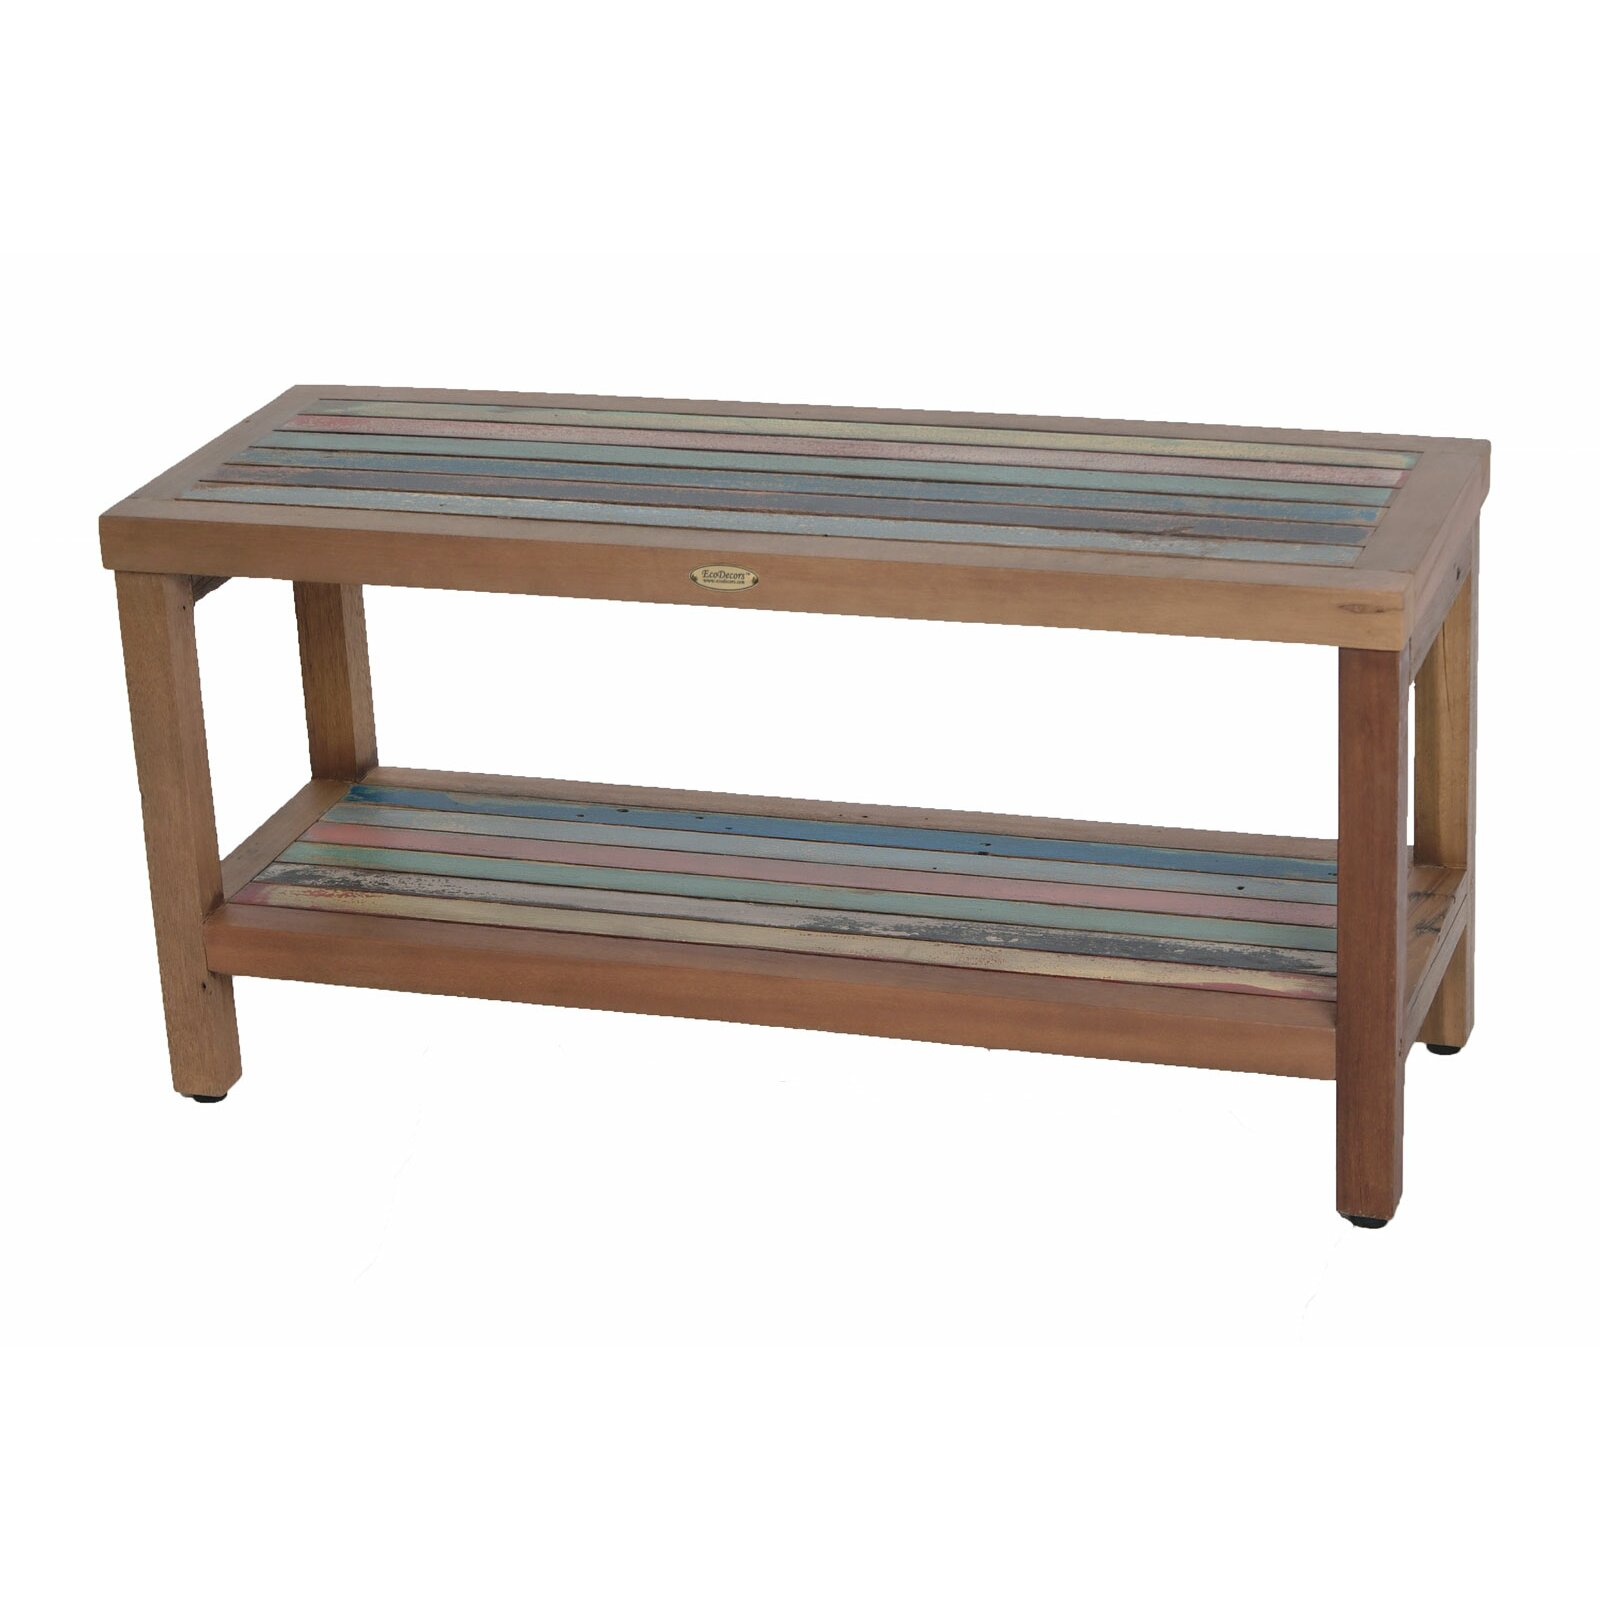 Ecodecors Ship2shape Reclaimed Salvaged Rustic Recycled Boat Bench With Shelf Wayfair